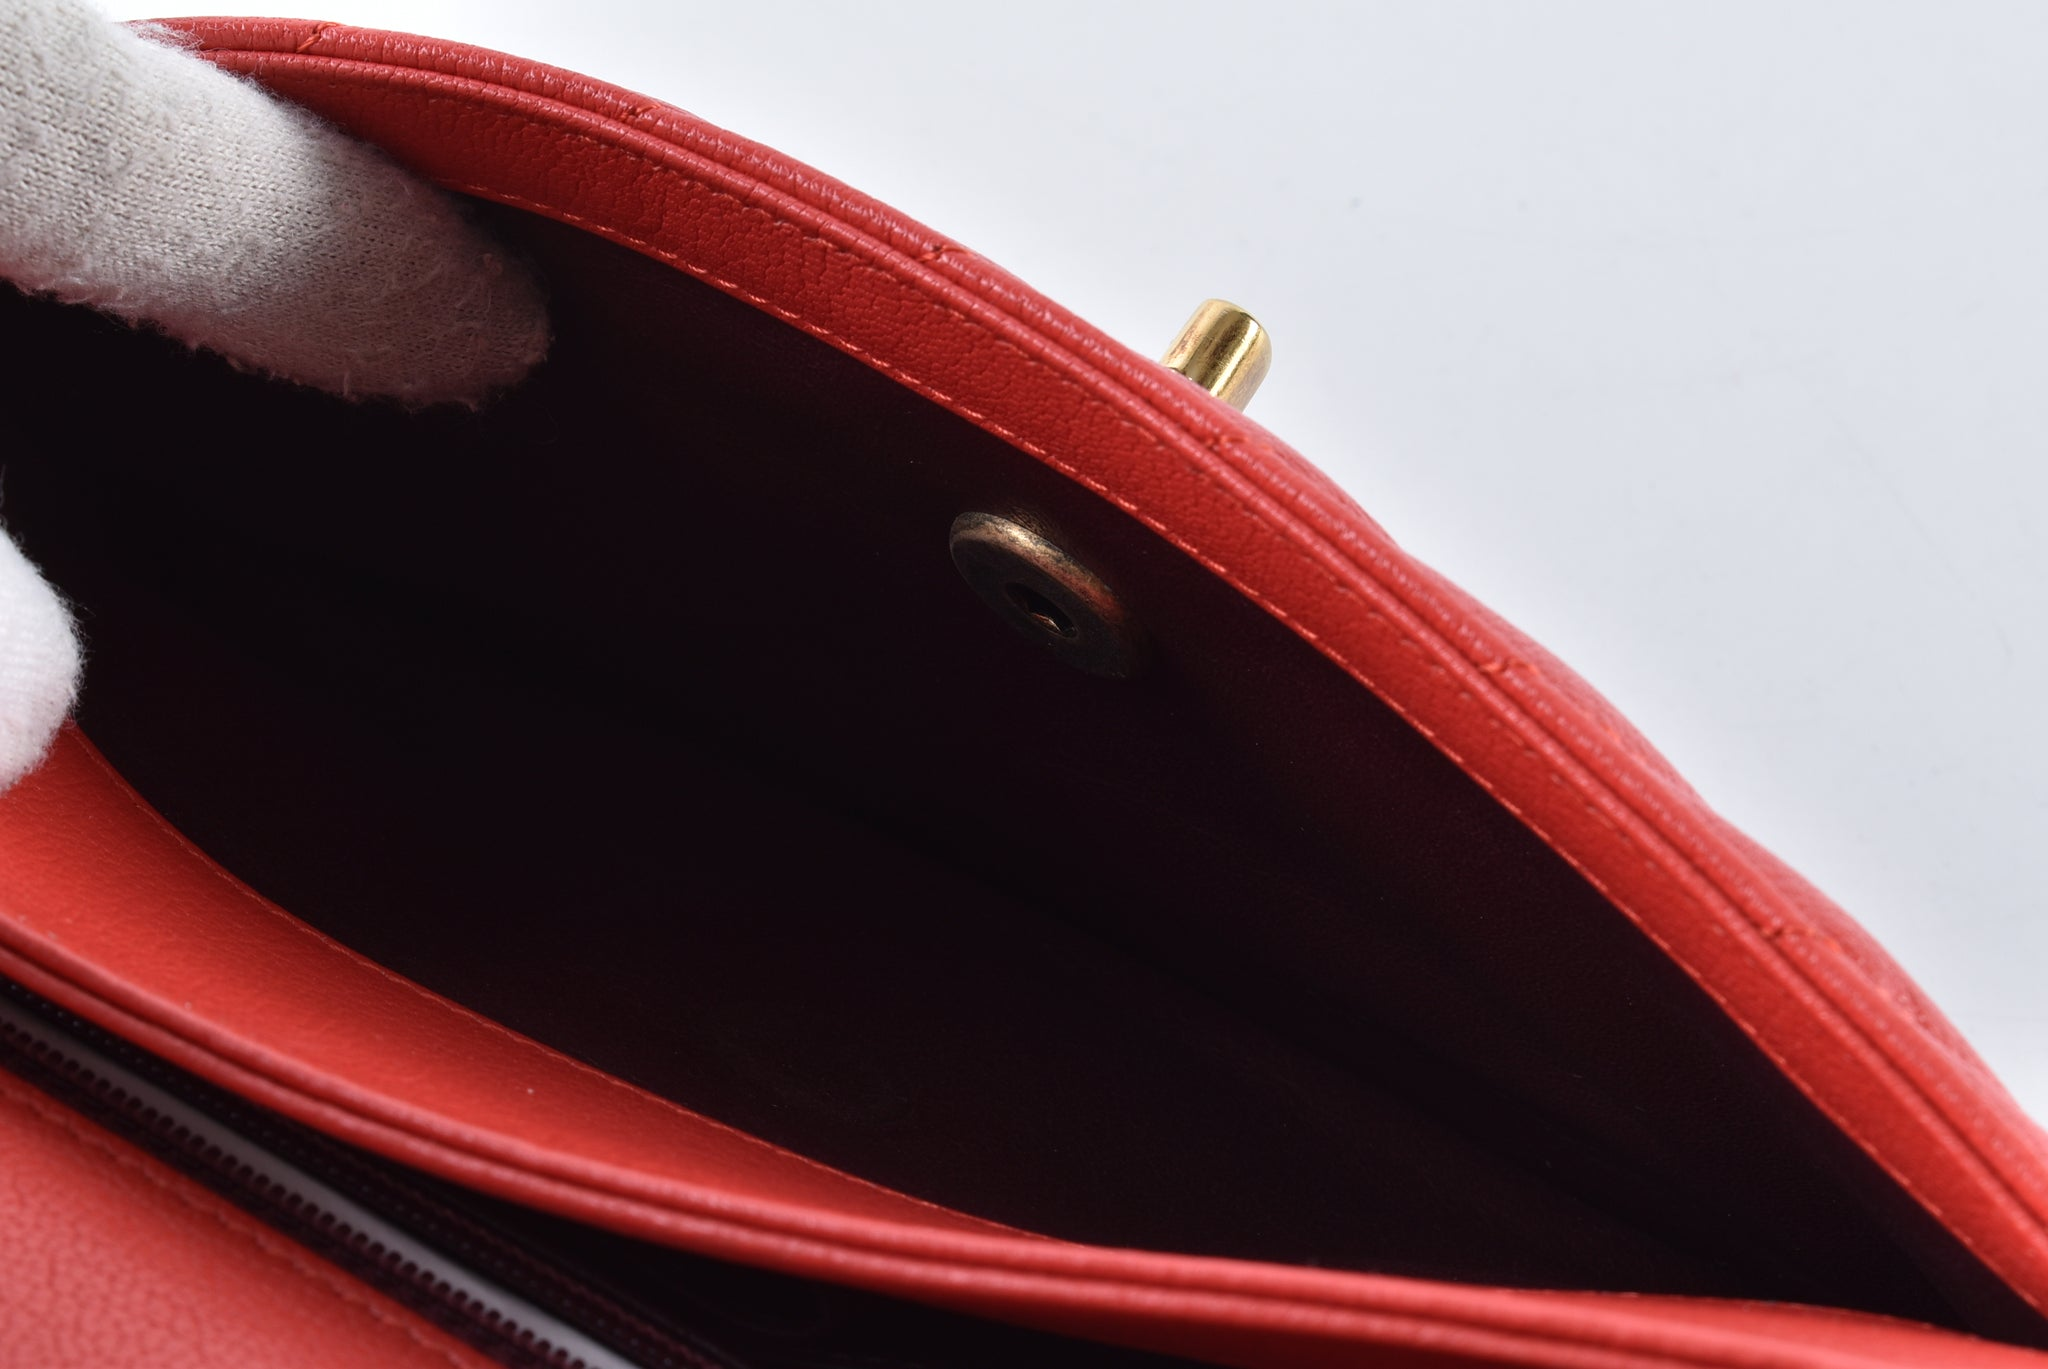 Chanel A93229 Y604872 B307 Sling Bag in Red - Glampot